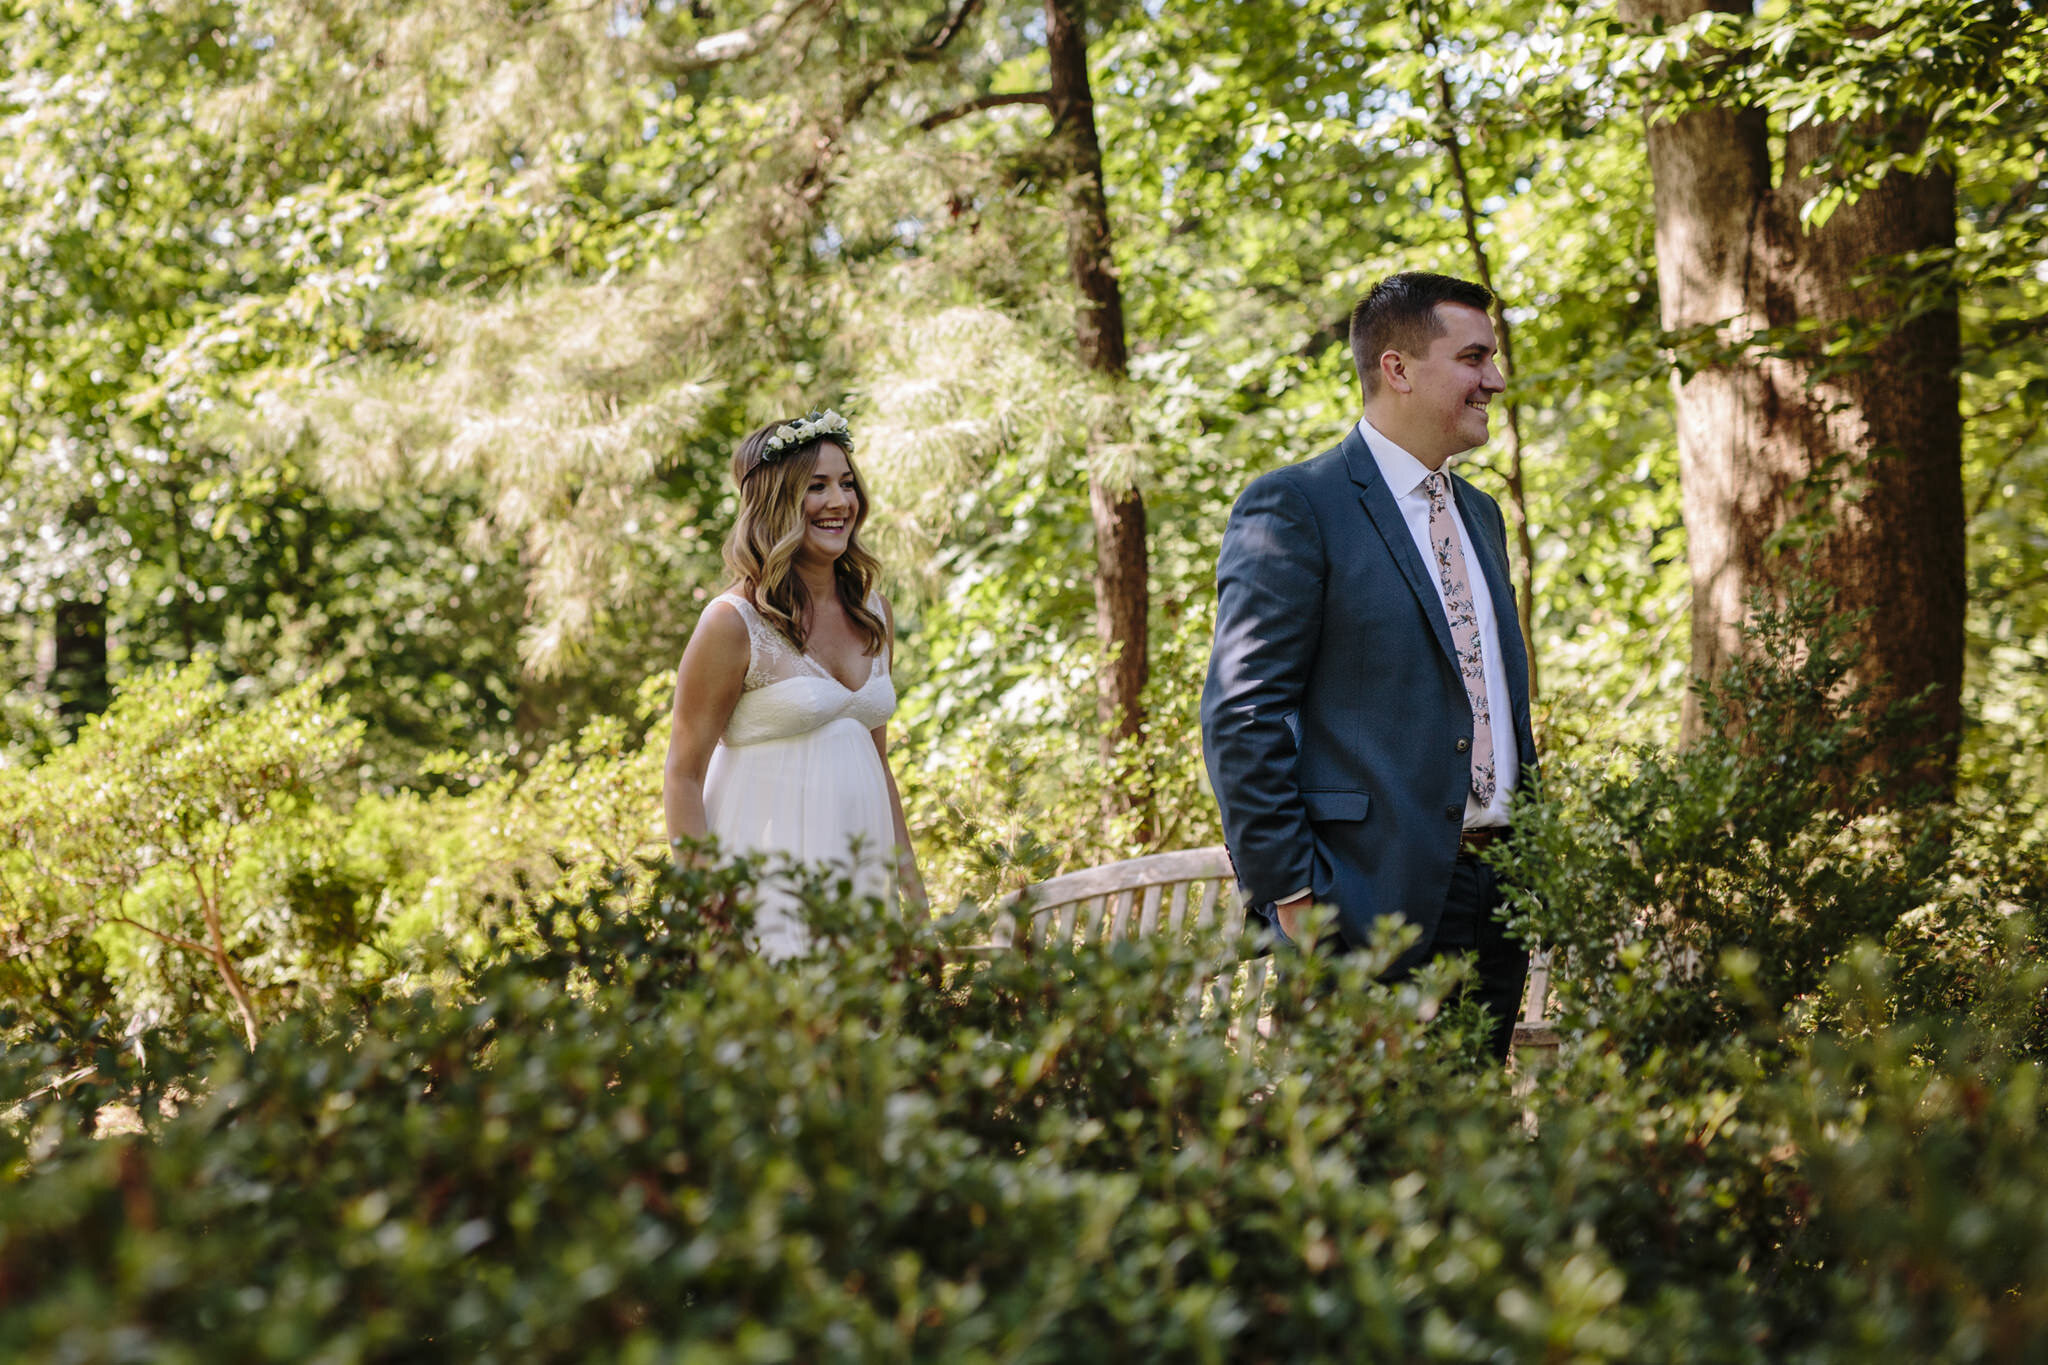 Lewis Ginter Botanical Gardens Wedding Looking For Wedding Location Ideas In Tn Va Or Nc Forever June Forever June